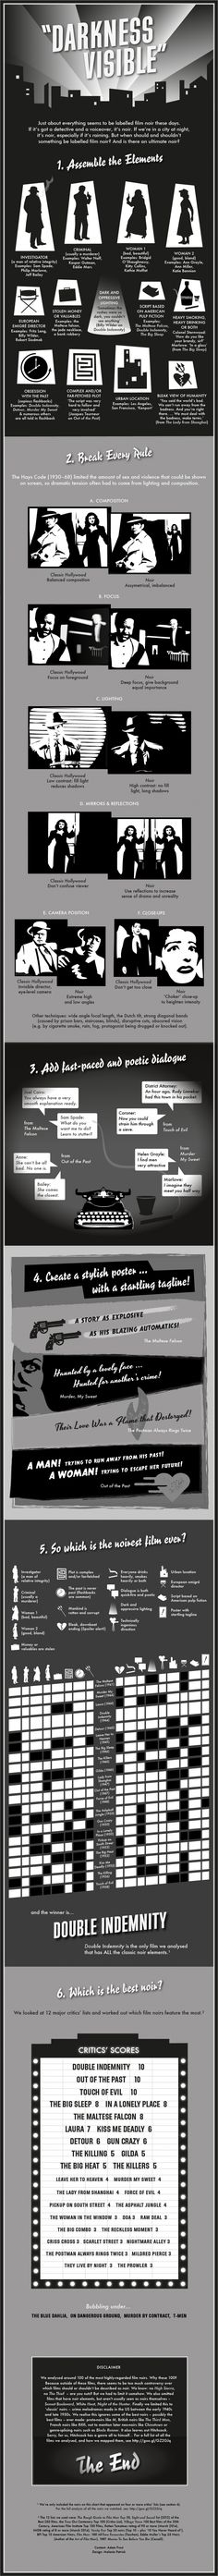 Infographic: What makes a film noir? | BFI If you want to enjoy the Good Life: making money in the comfort of your own home with your photography, then this is for YOU … http://photographyjobs-net.blogspot.com?prod=ikPPcKqA